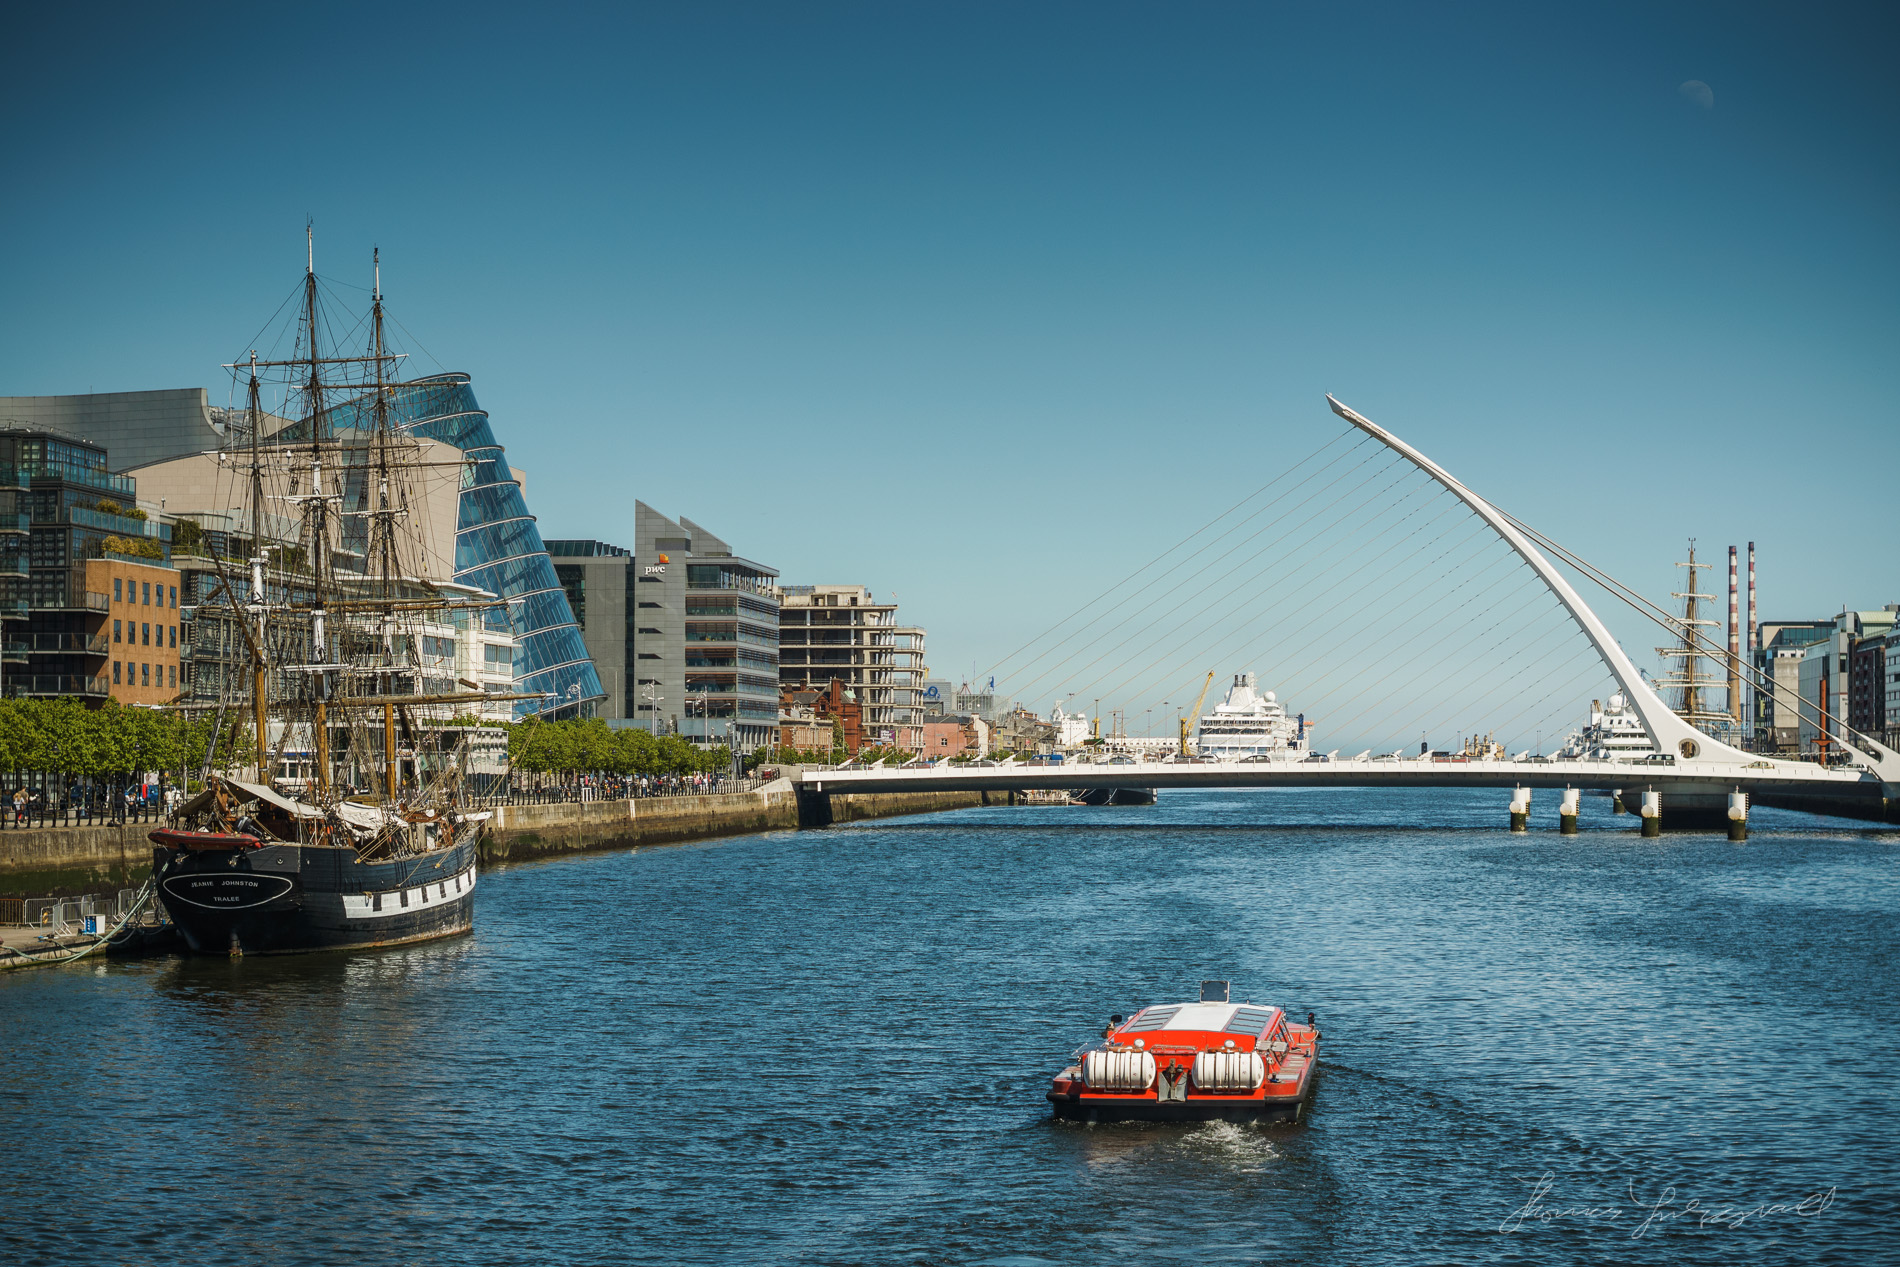 Modern Dublin and the River Liffey